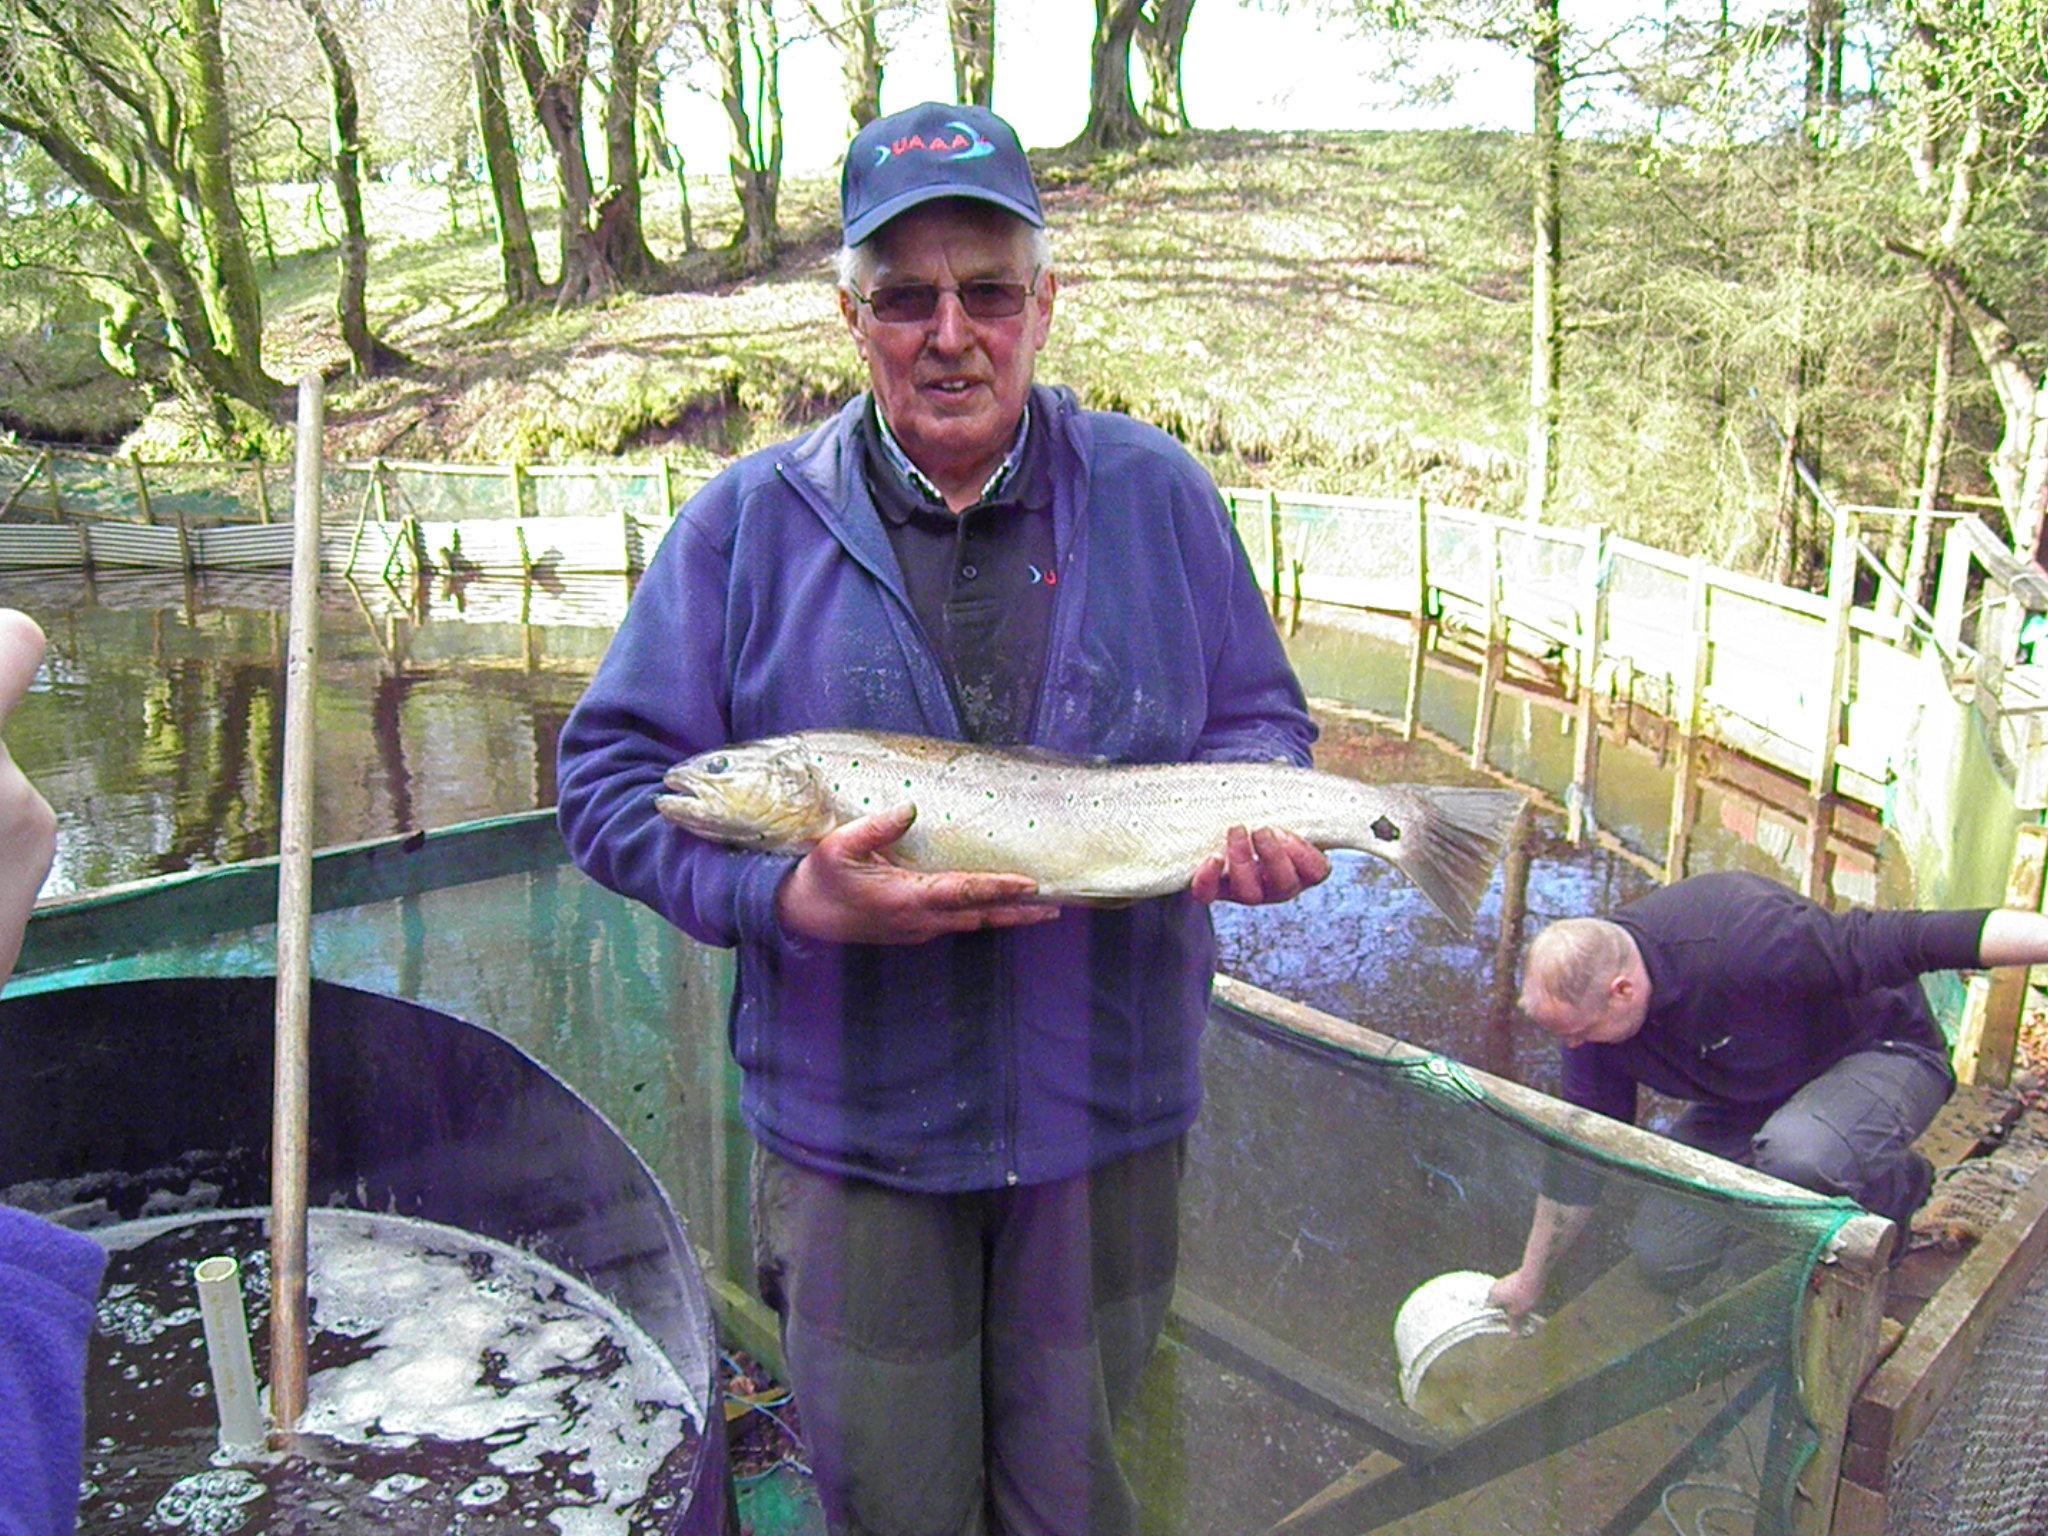 Jim proudly showing off a fine Brownie from the UAAA's rearing ponds ready for stocking.